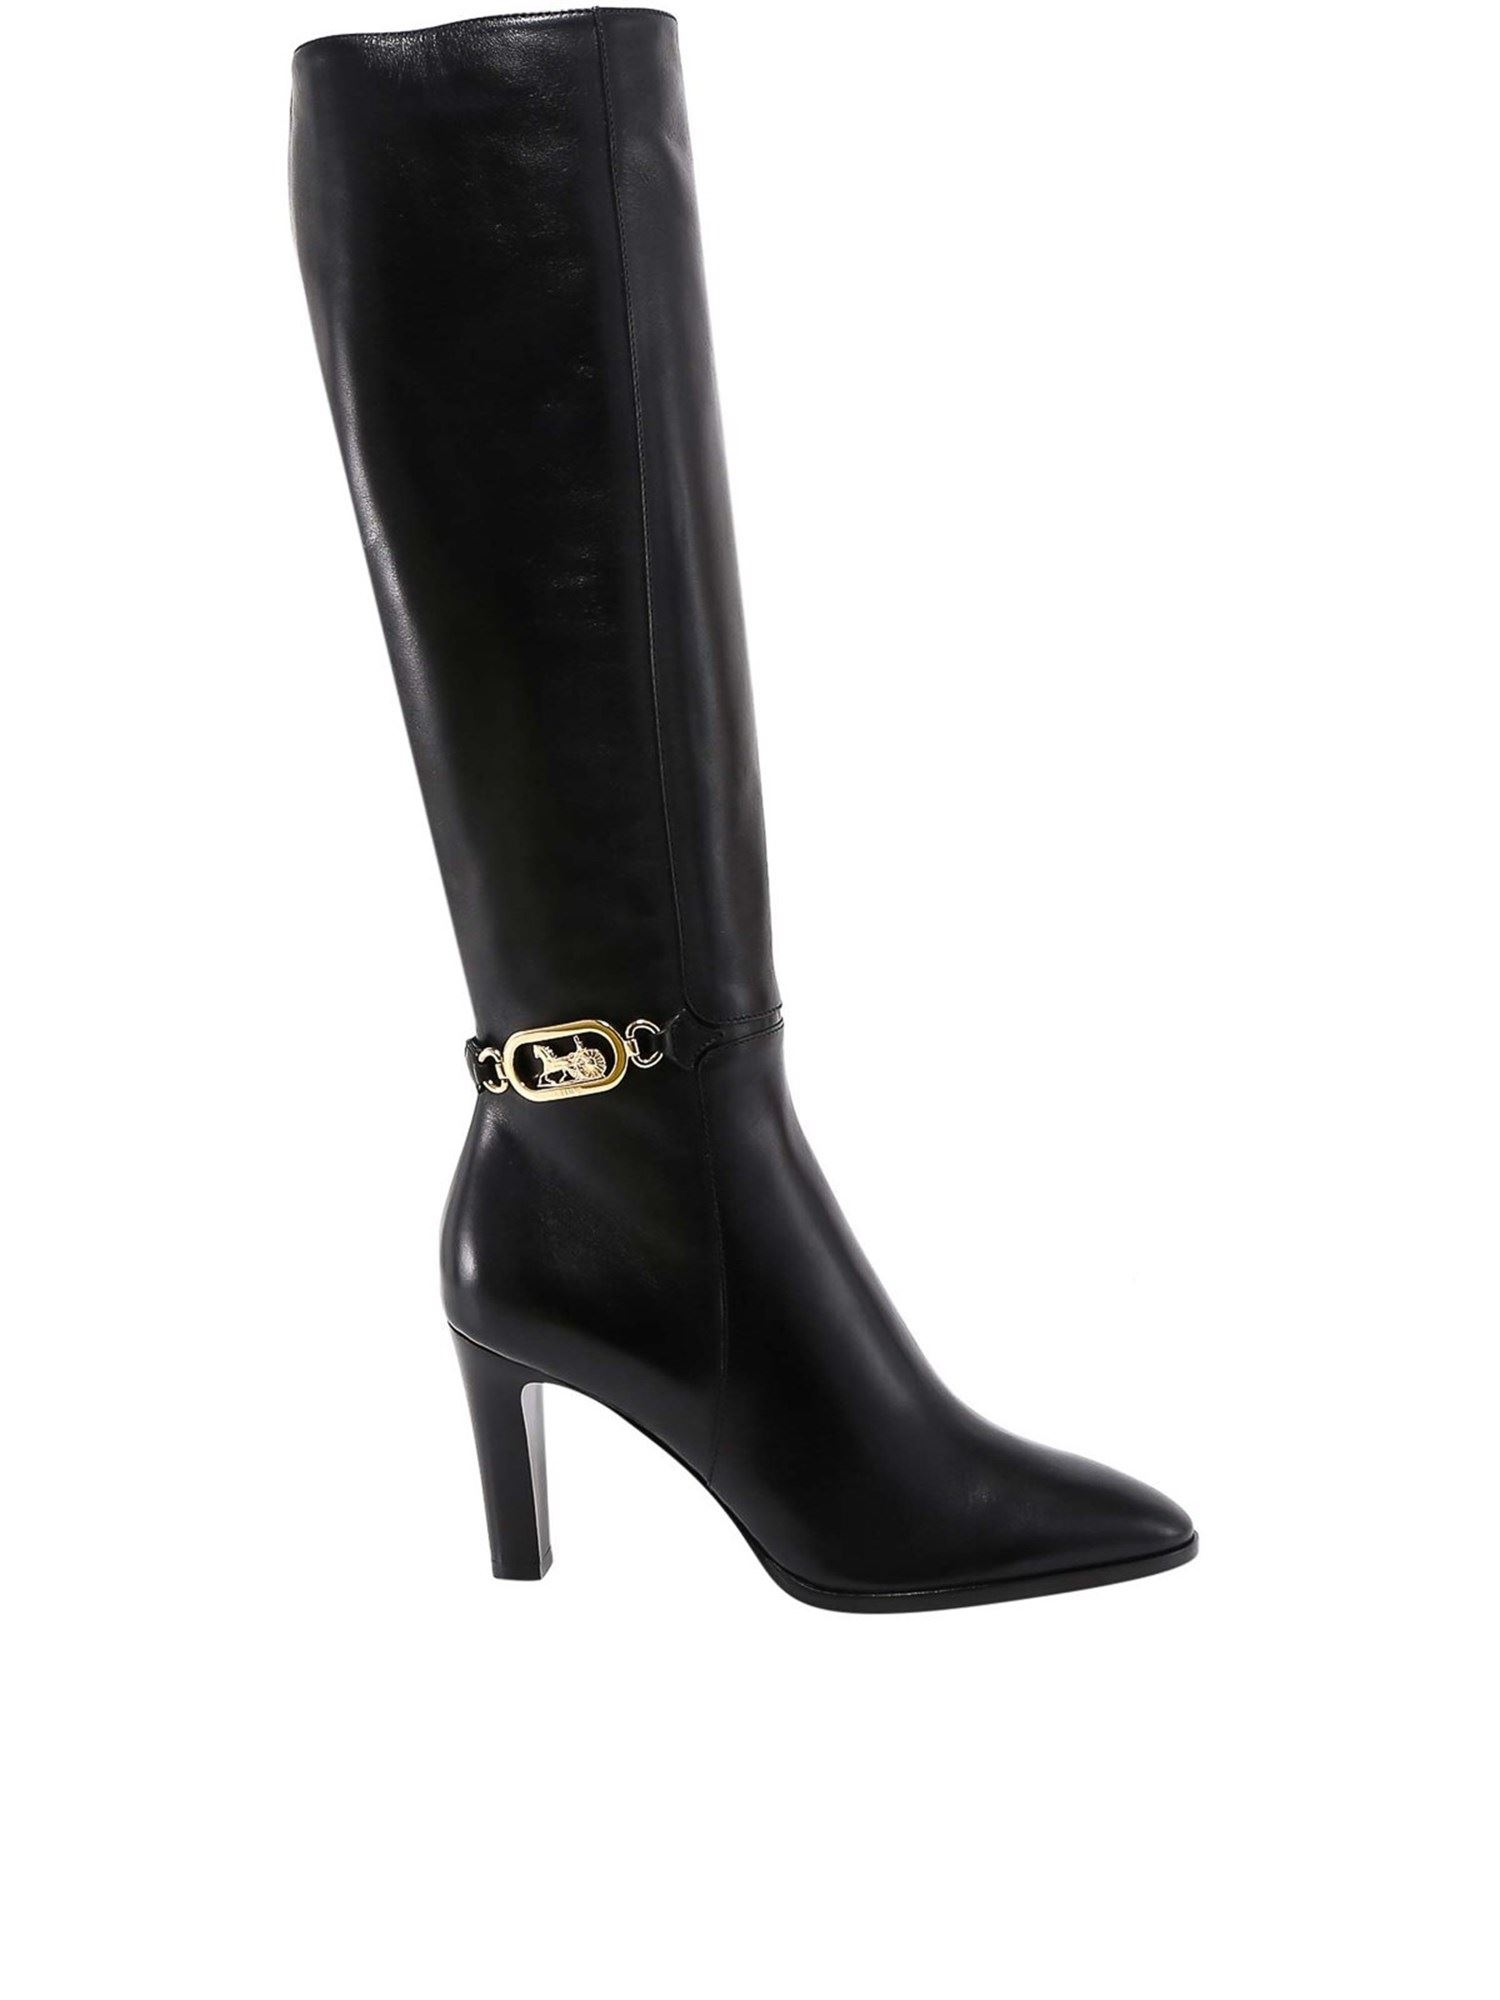 Celine LEATHER BOOTS IN BLACK